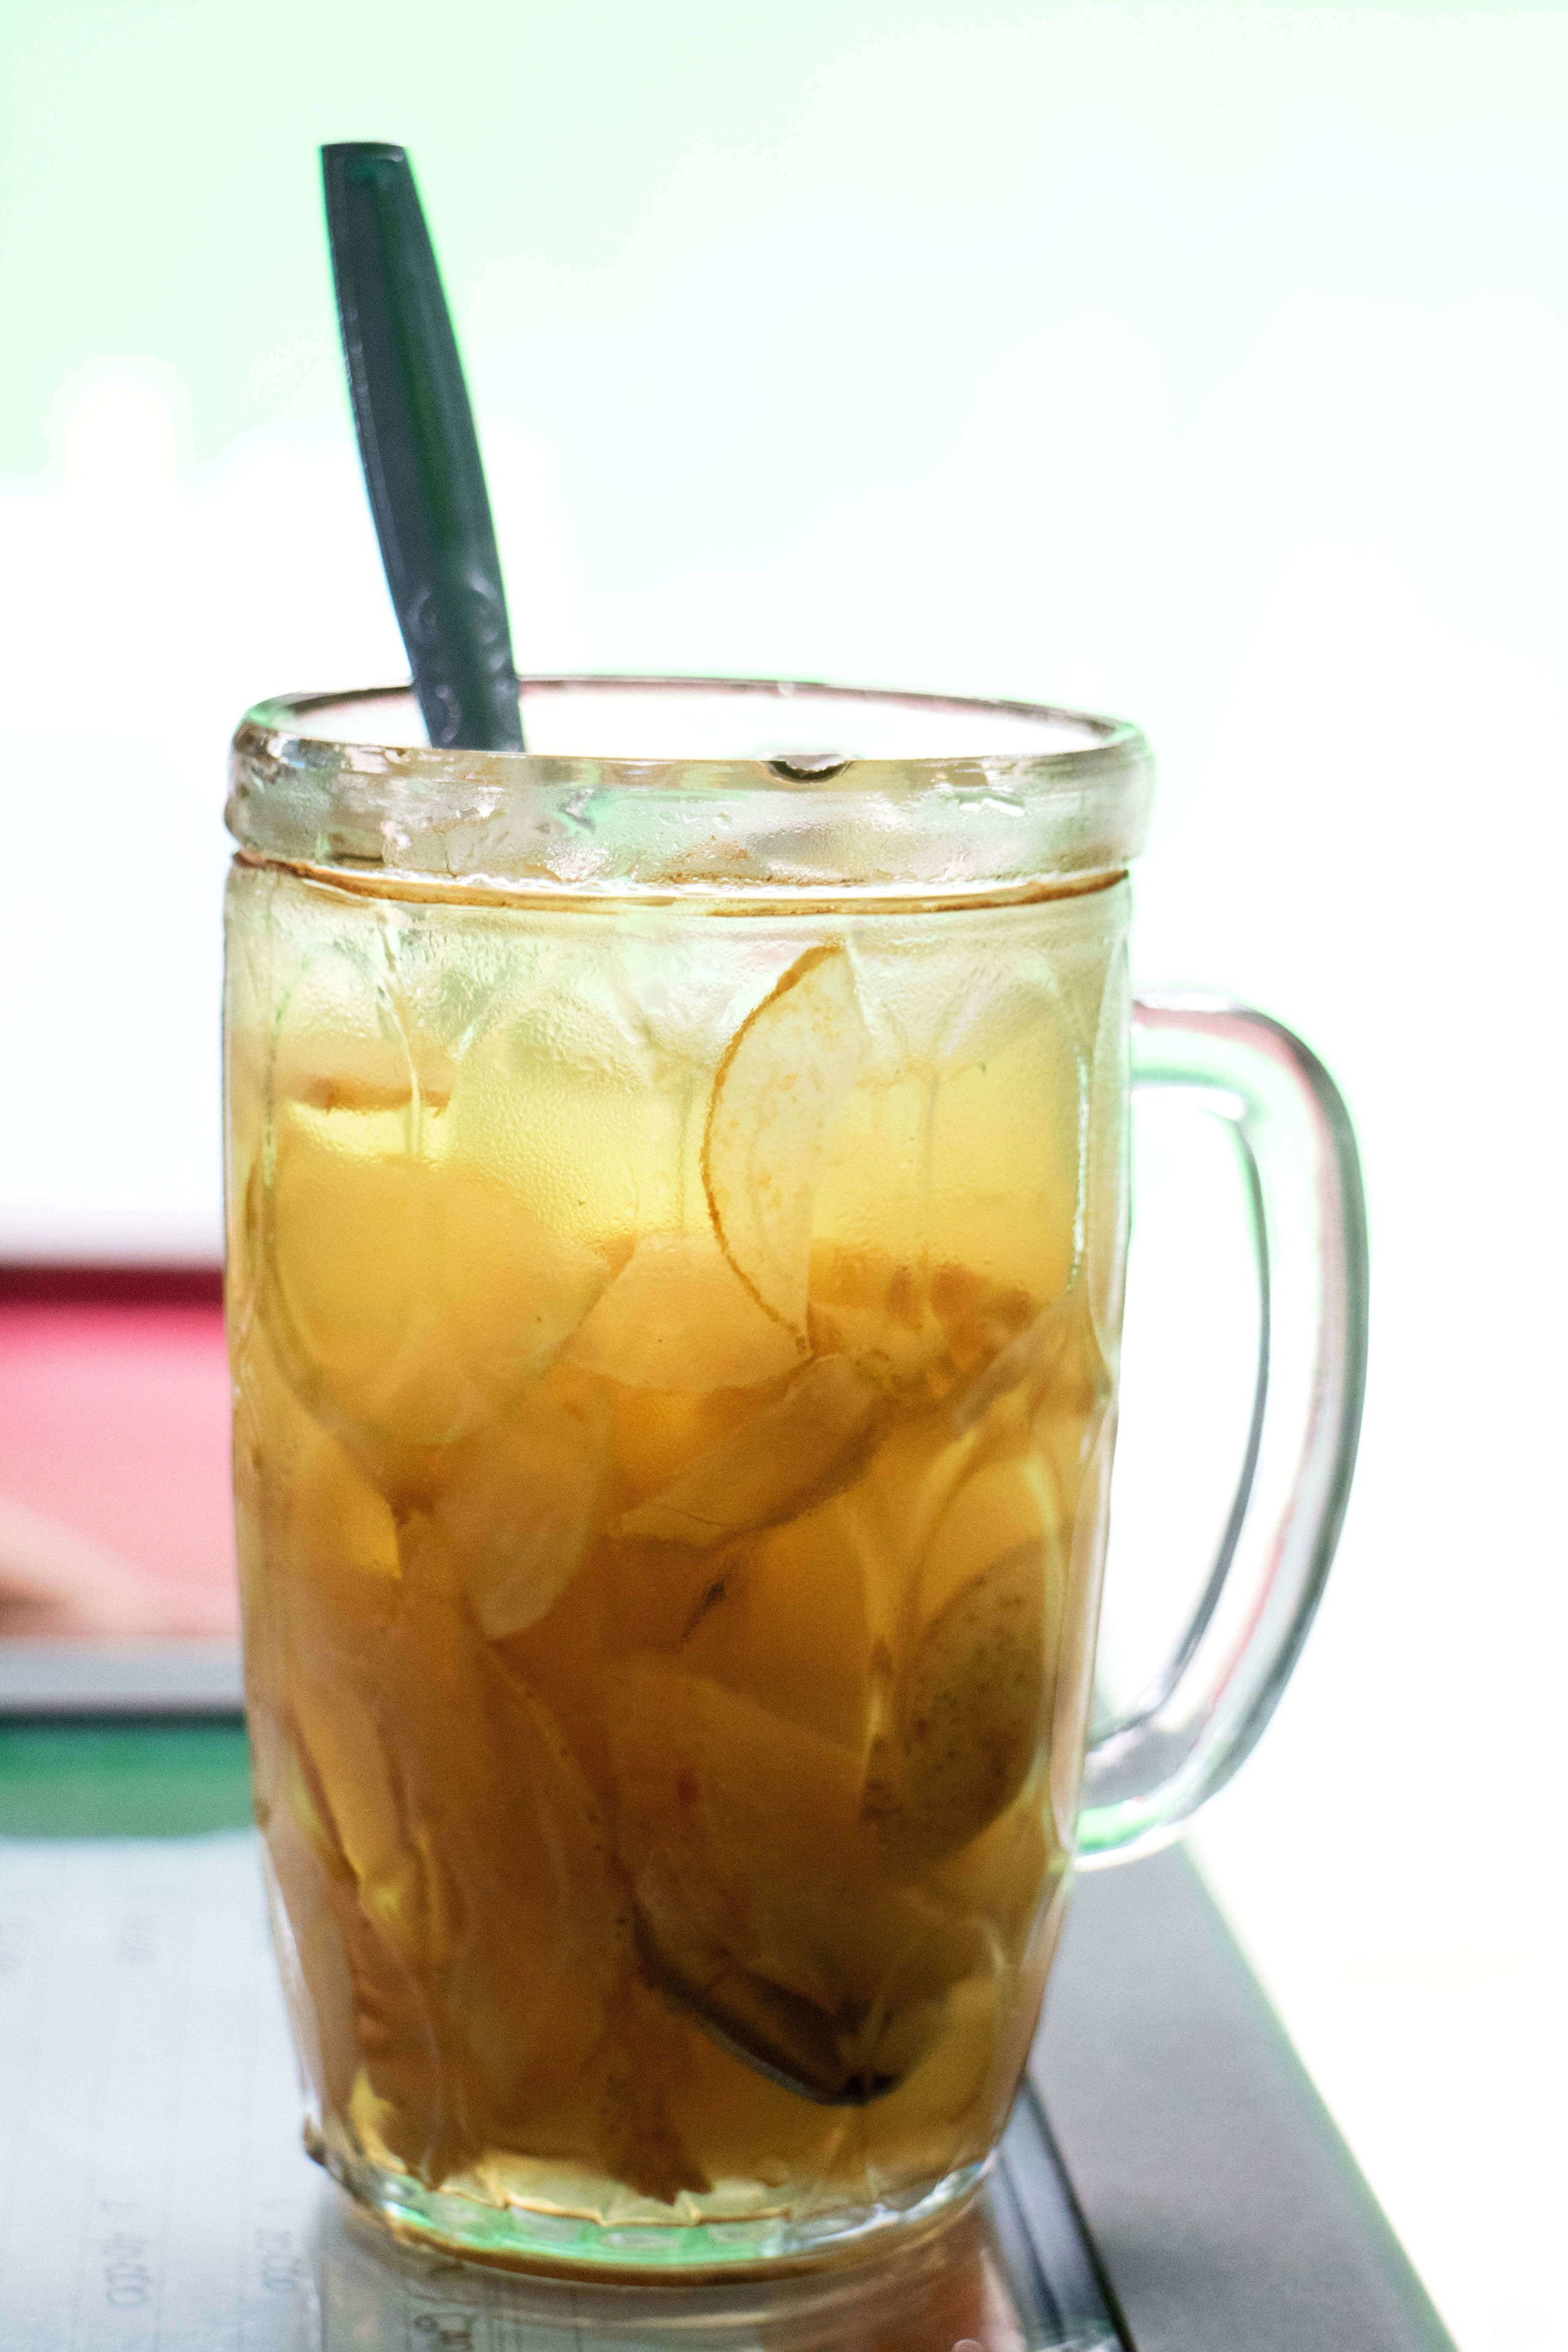 Iced drink at a local street food vendor in Jakarta